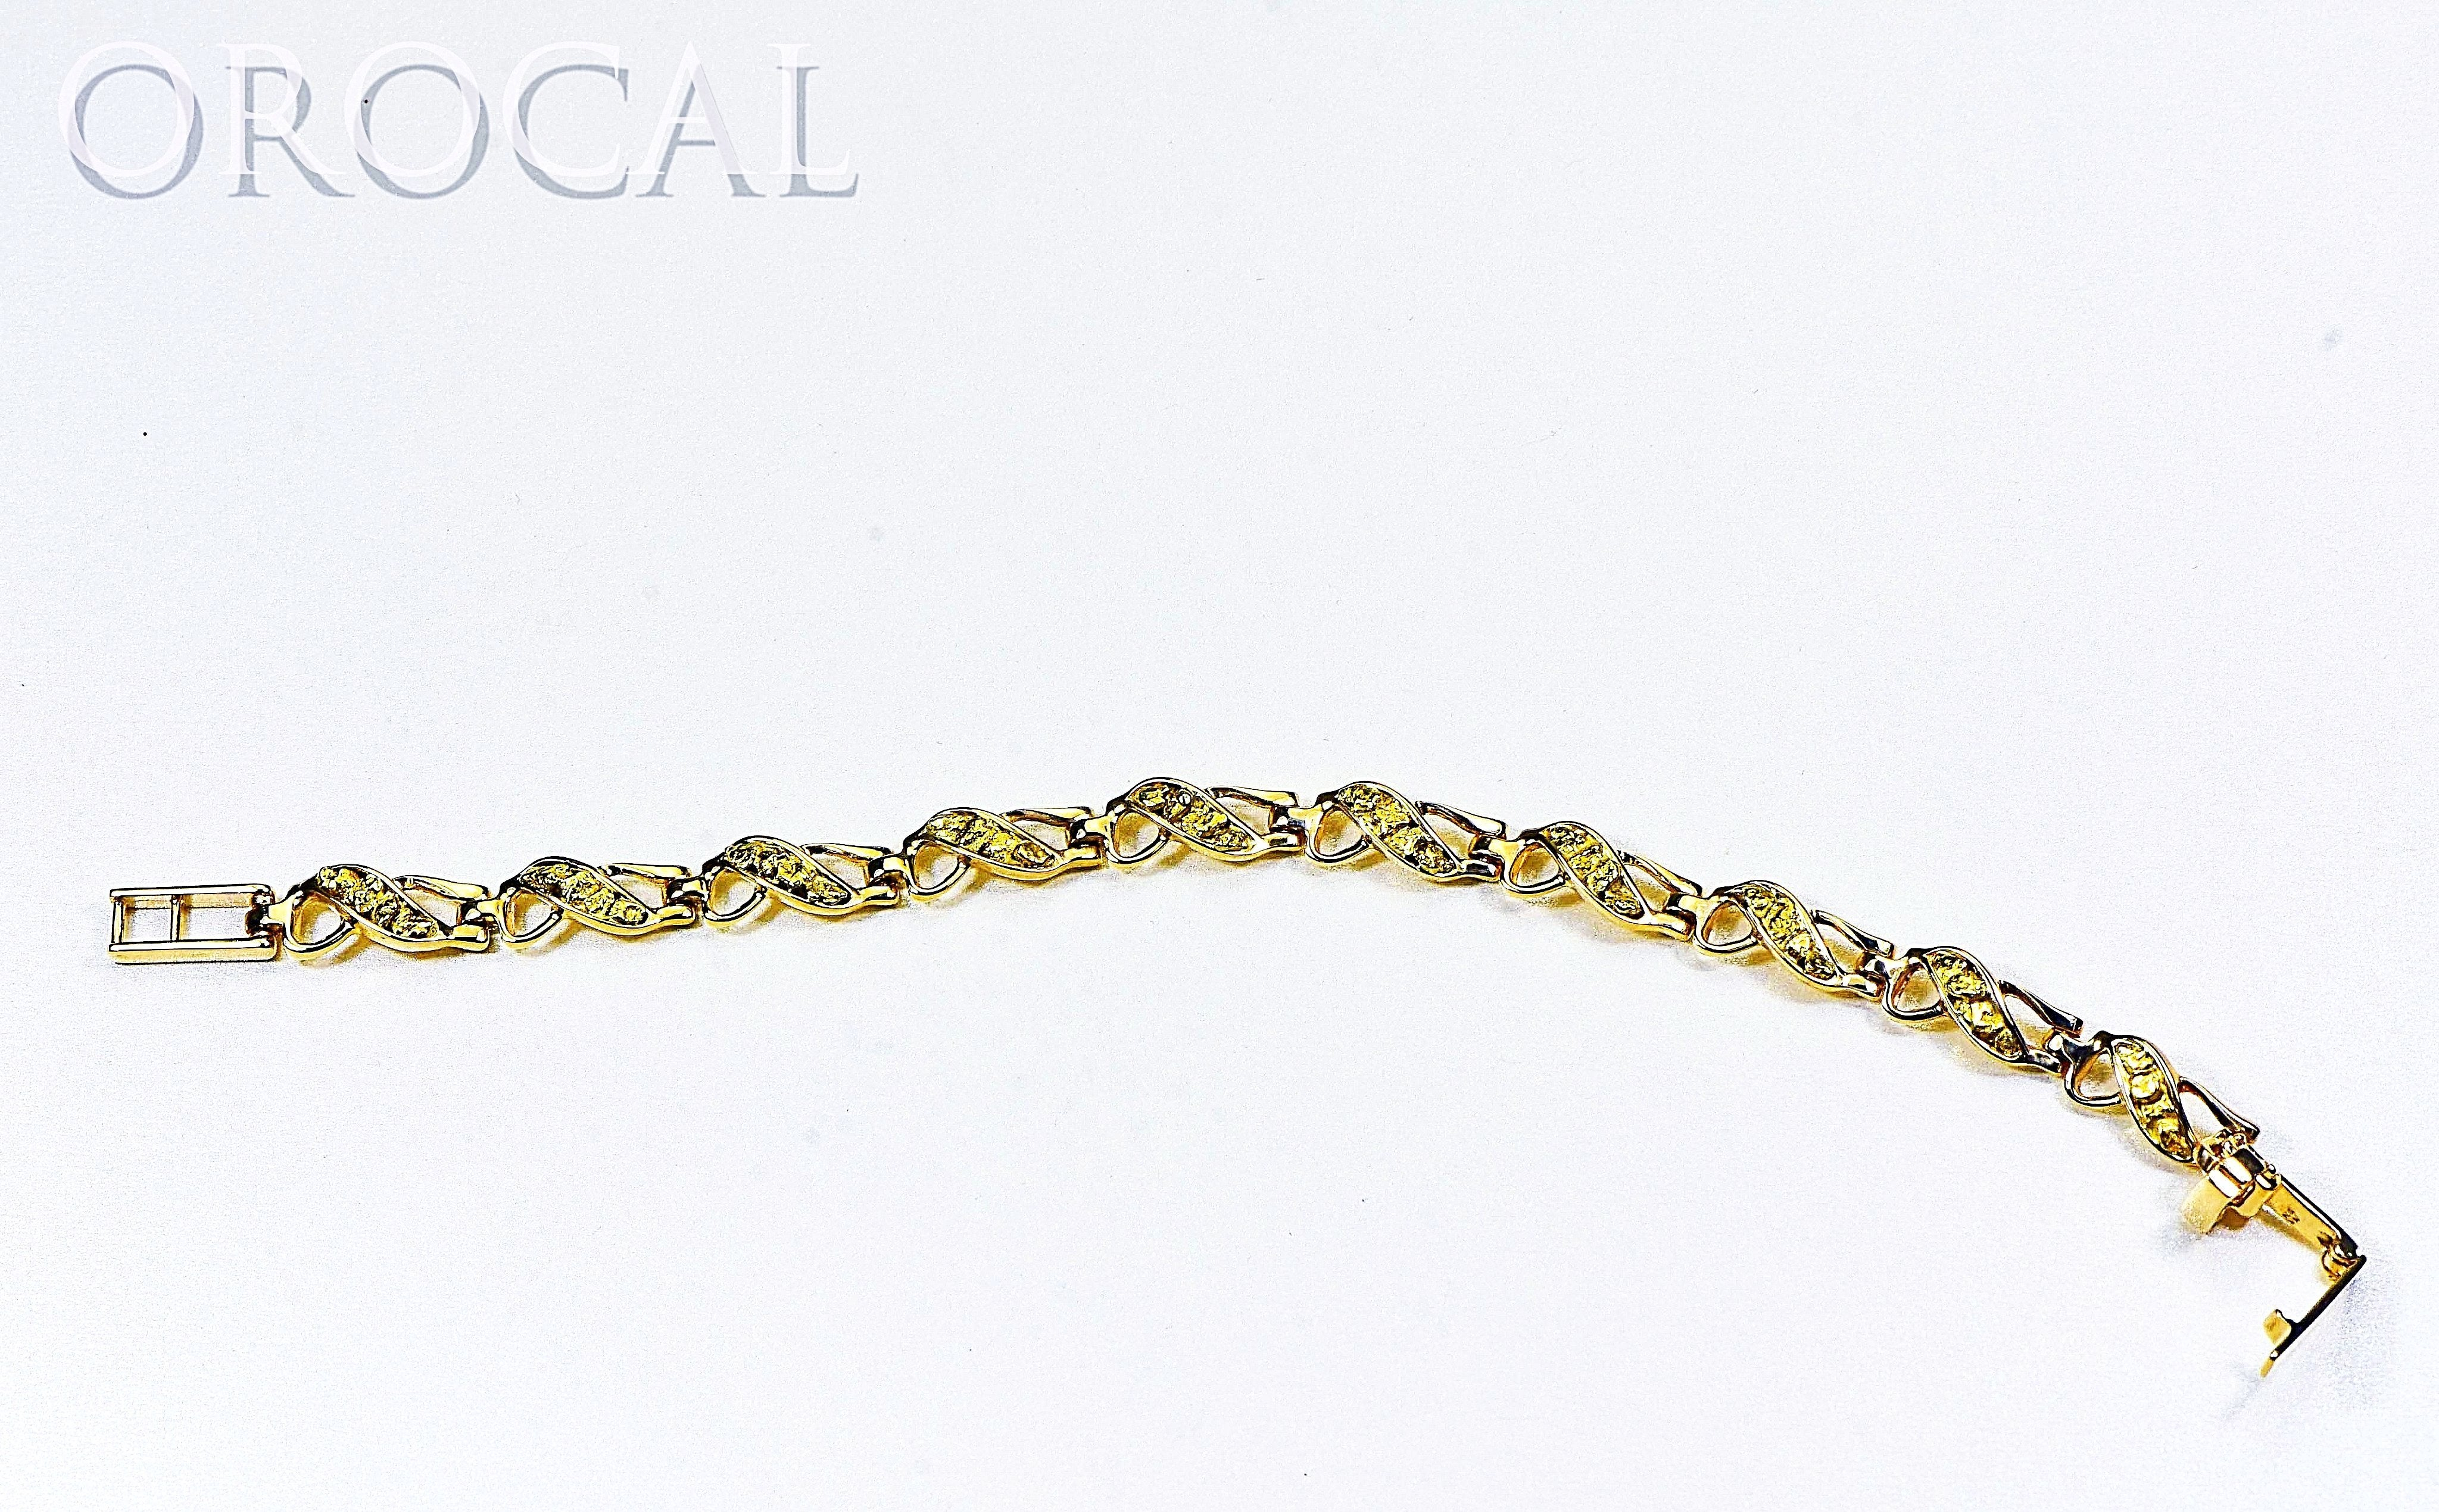 "Gold Nugget Bracelet ""Orocal"" BWB40N9L Genuine Hand Crafted Jewelry - 14K Gold Casting"